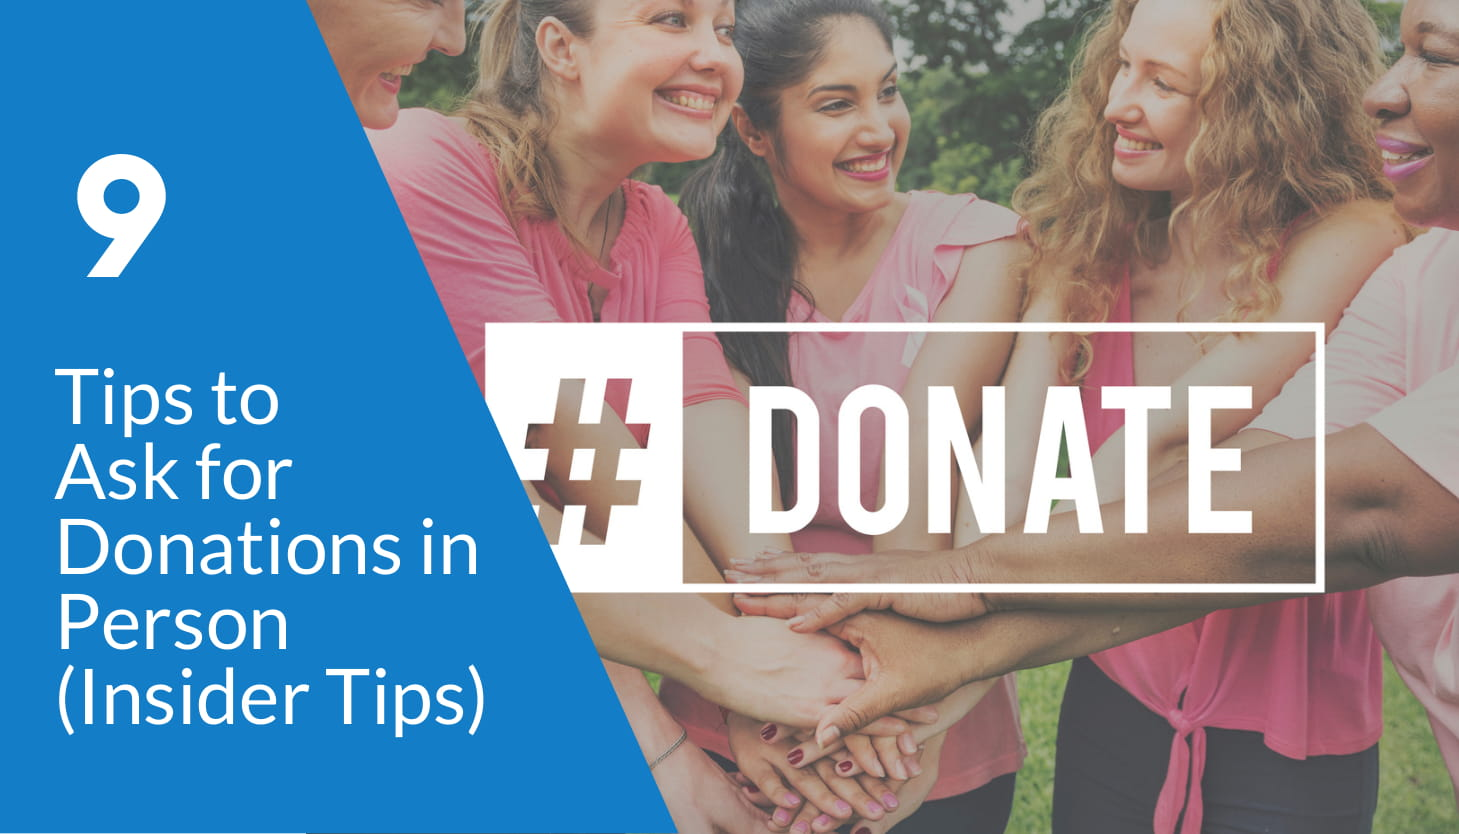 9 Tips to Ask for Donations in Person (Insider Tips)